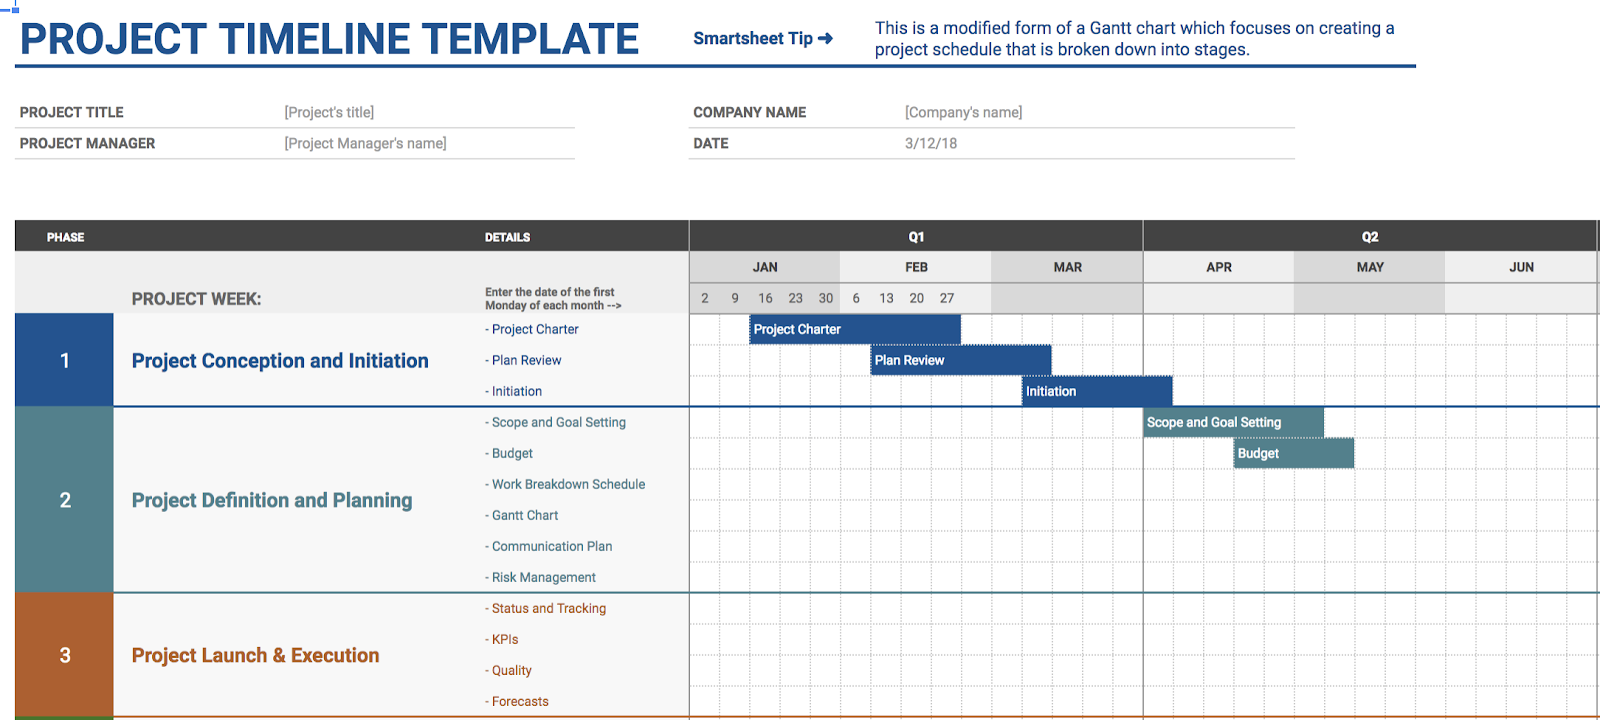 Of The Best Free Google Sheets Templates For - Google sheets schedule template